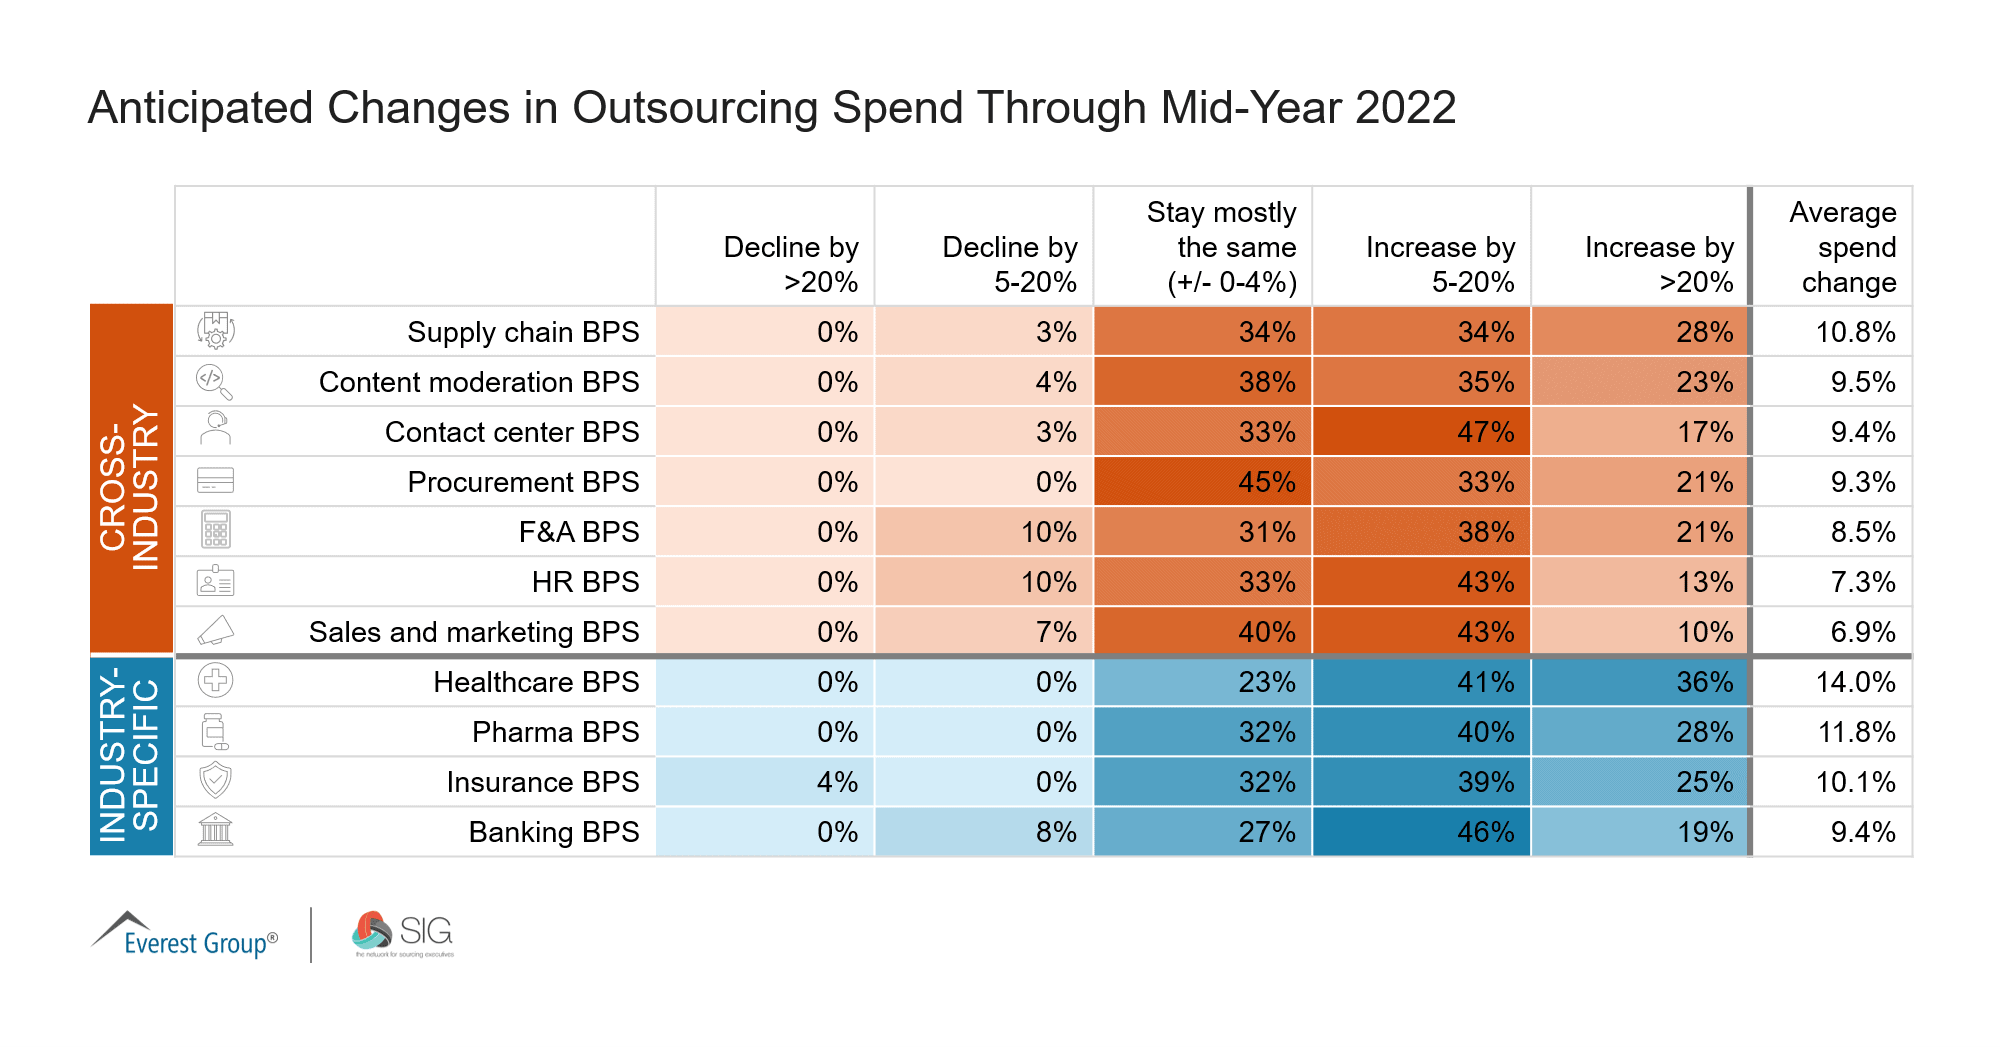 Anticipated Changes in Outsourcing Spend Through Mid Year 2022